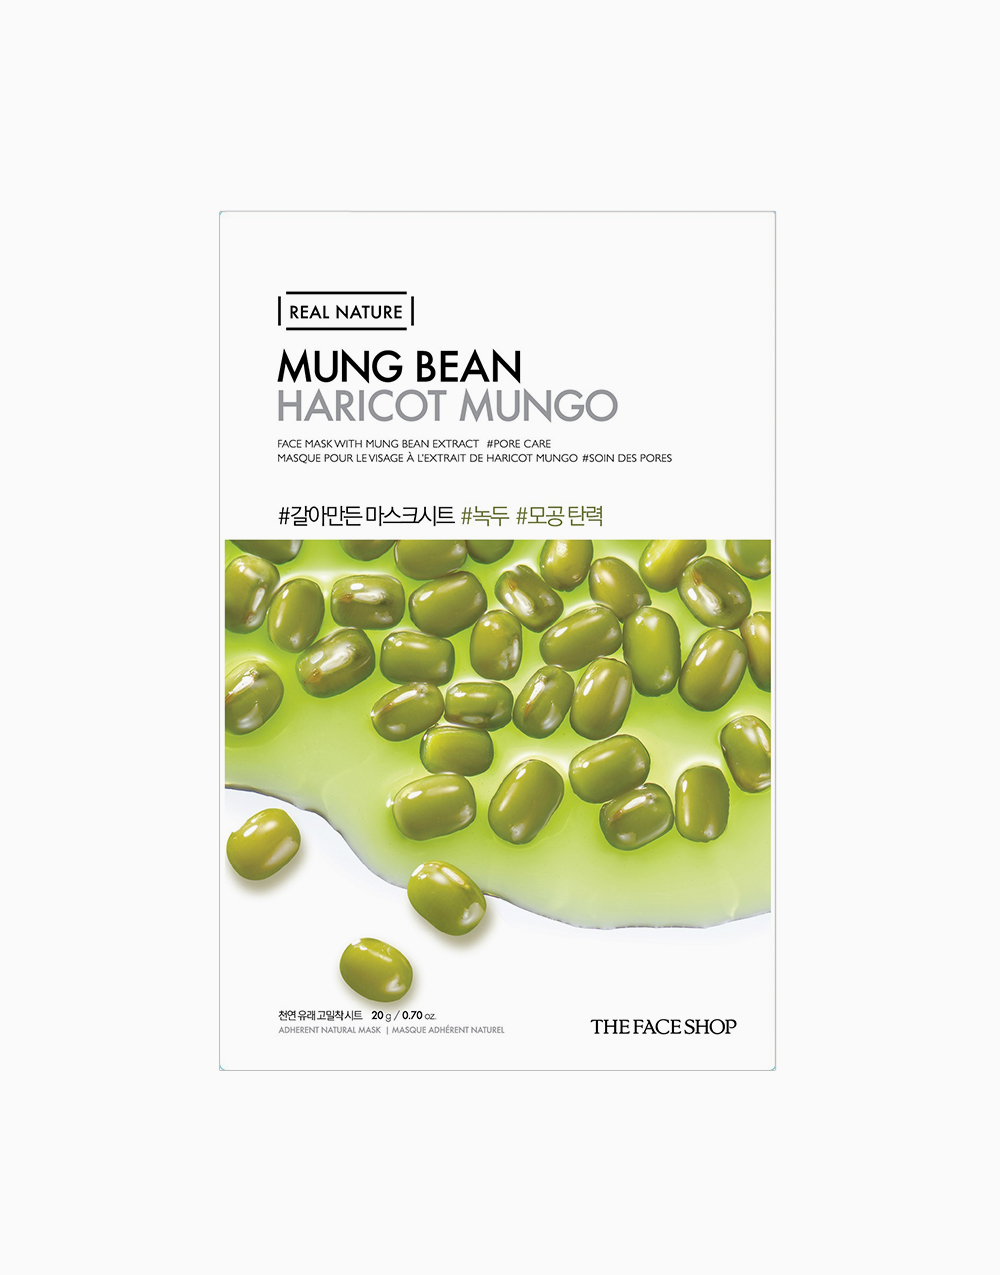 Real Nature Mung Bean Face Mask by The Face Shop